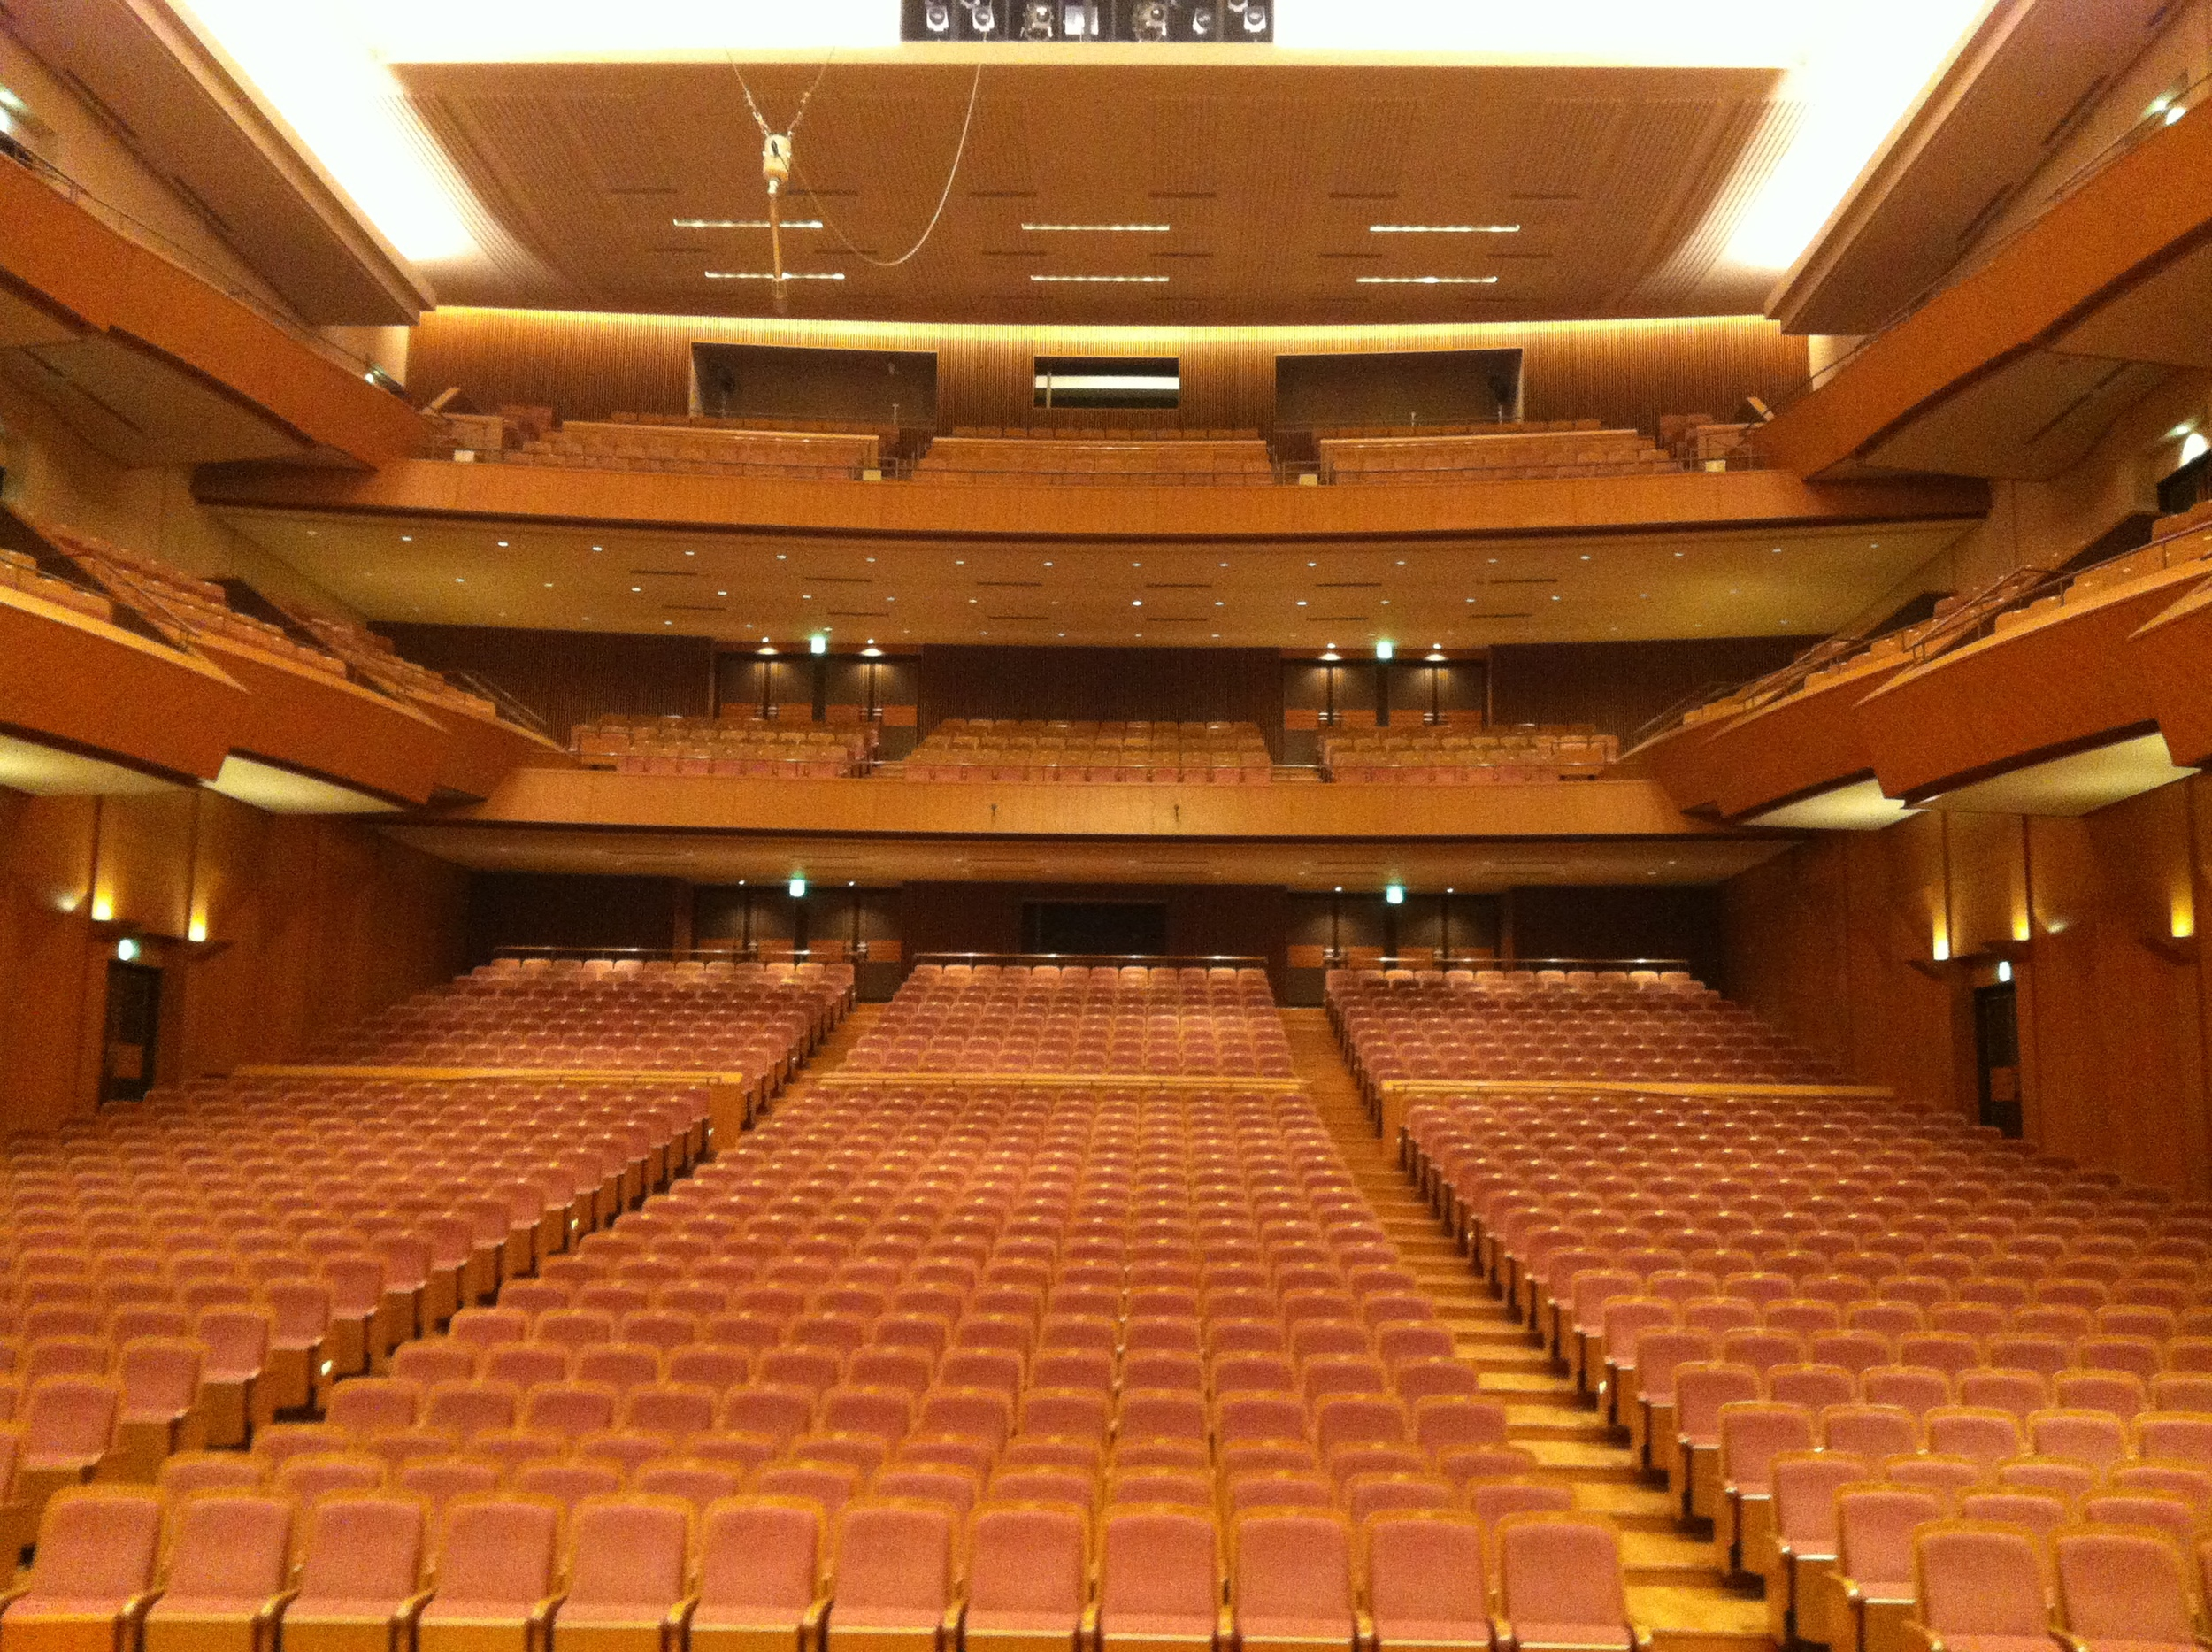 A stage picture at Yokohama Minato Mirai Hall. It seats over 2,000 people!